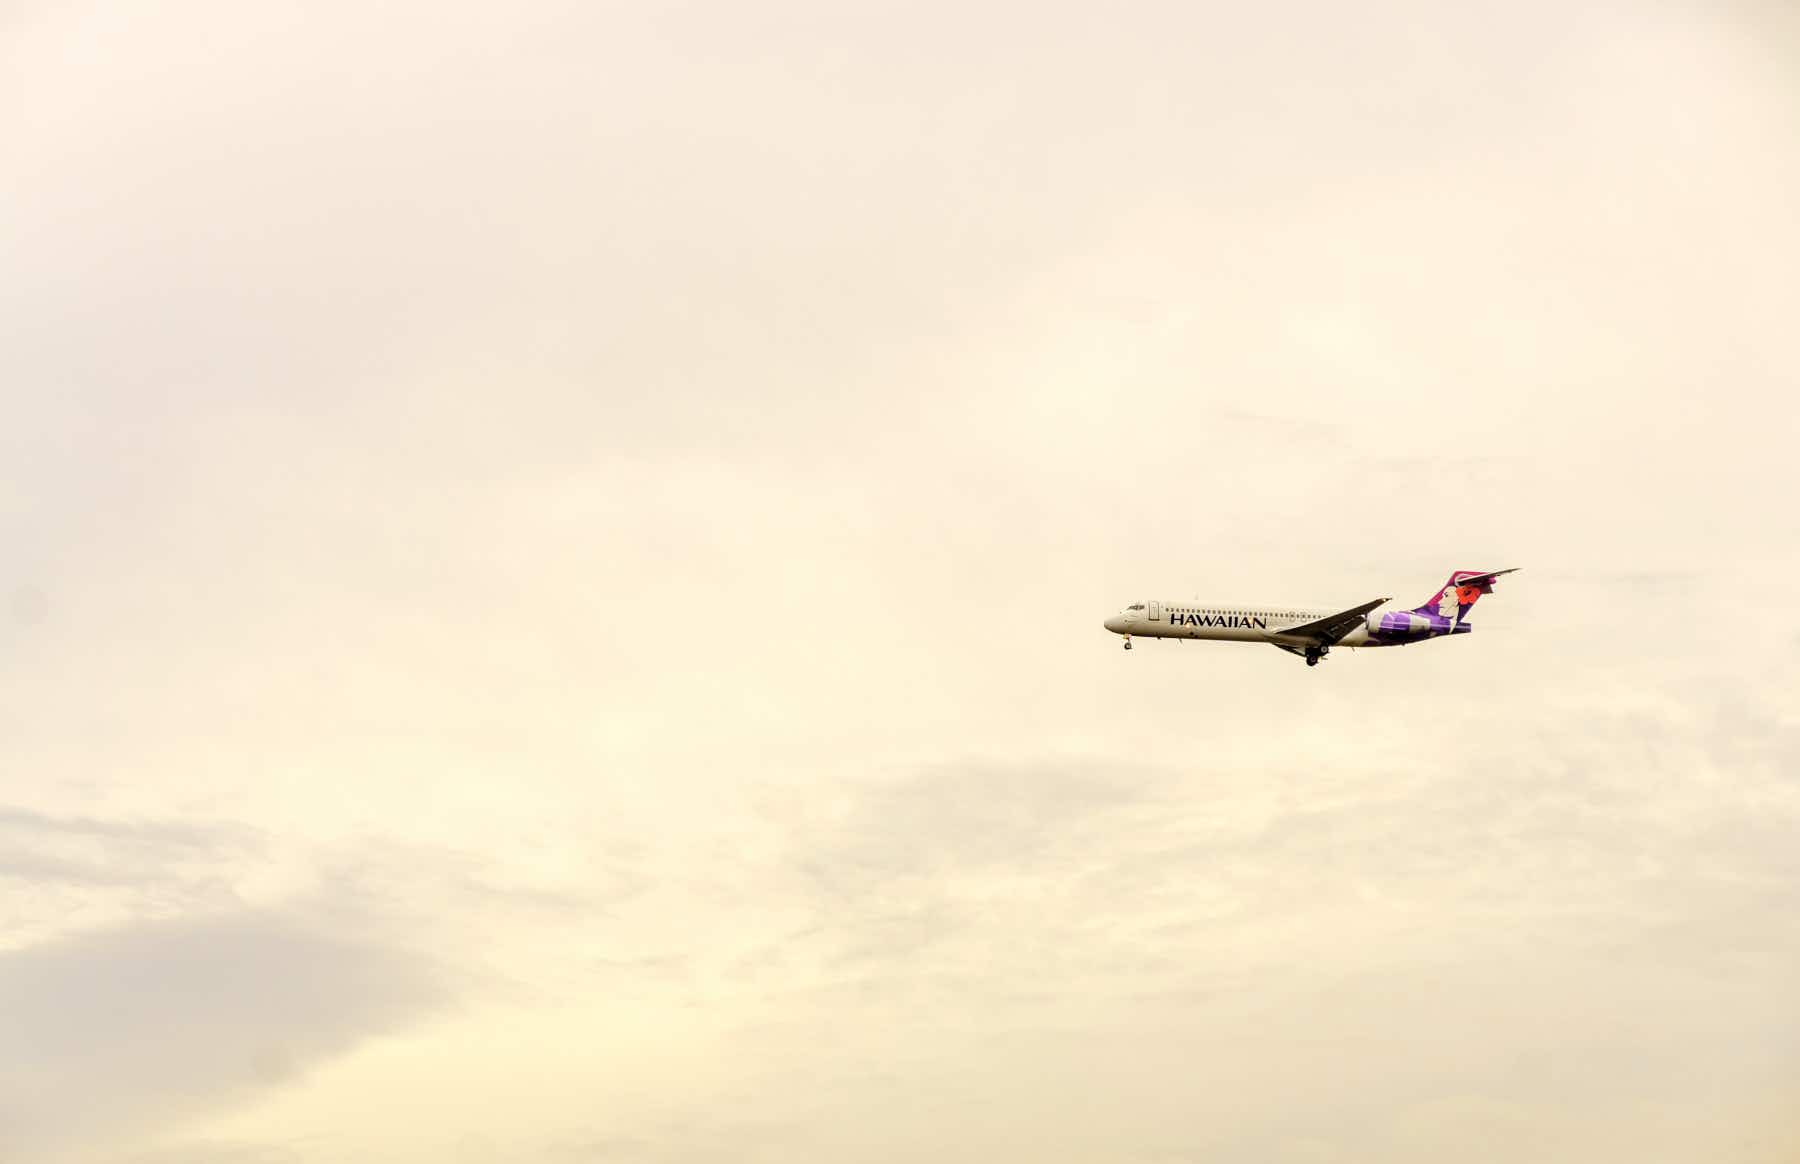 The longest US domestic flight will be in the air next spring